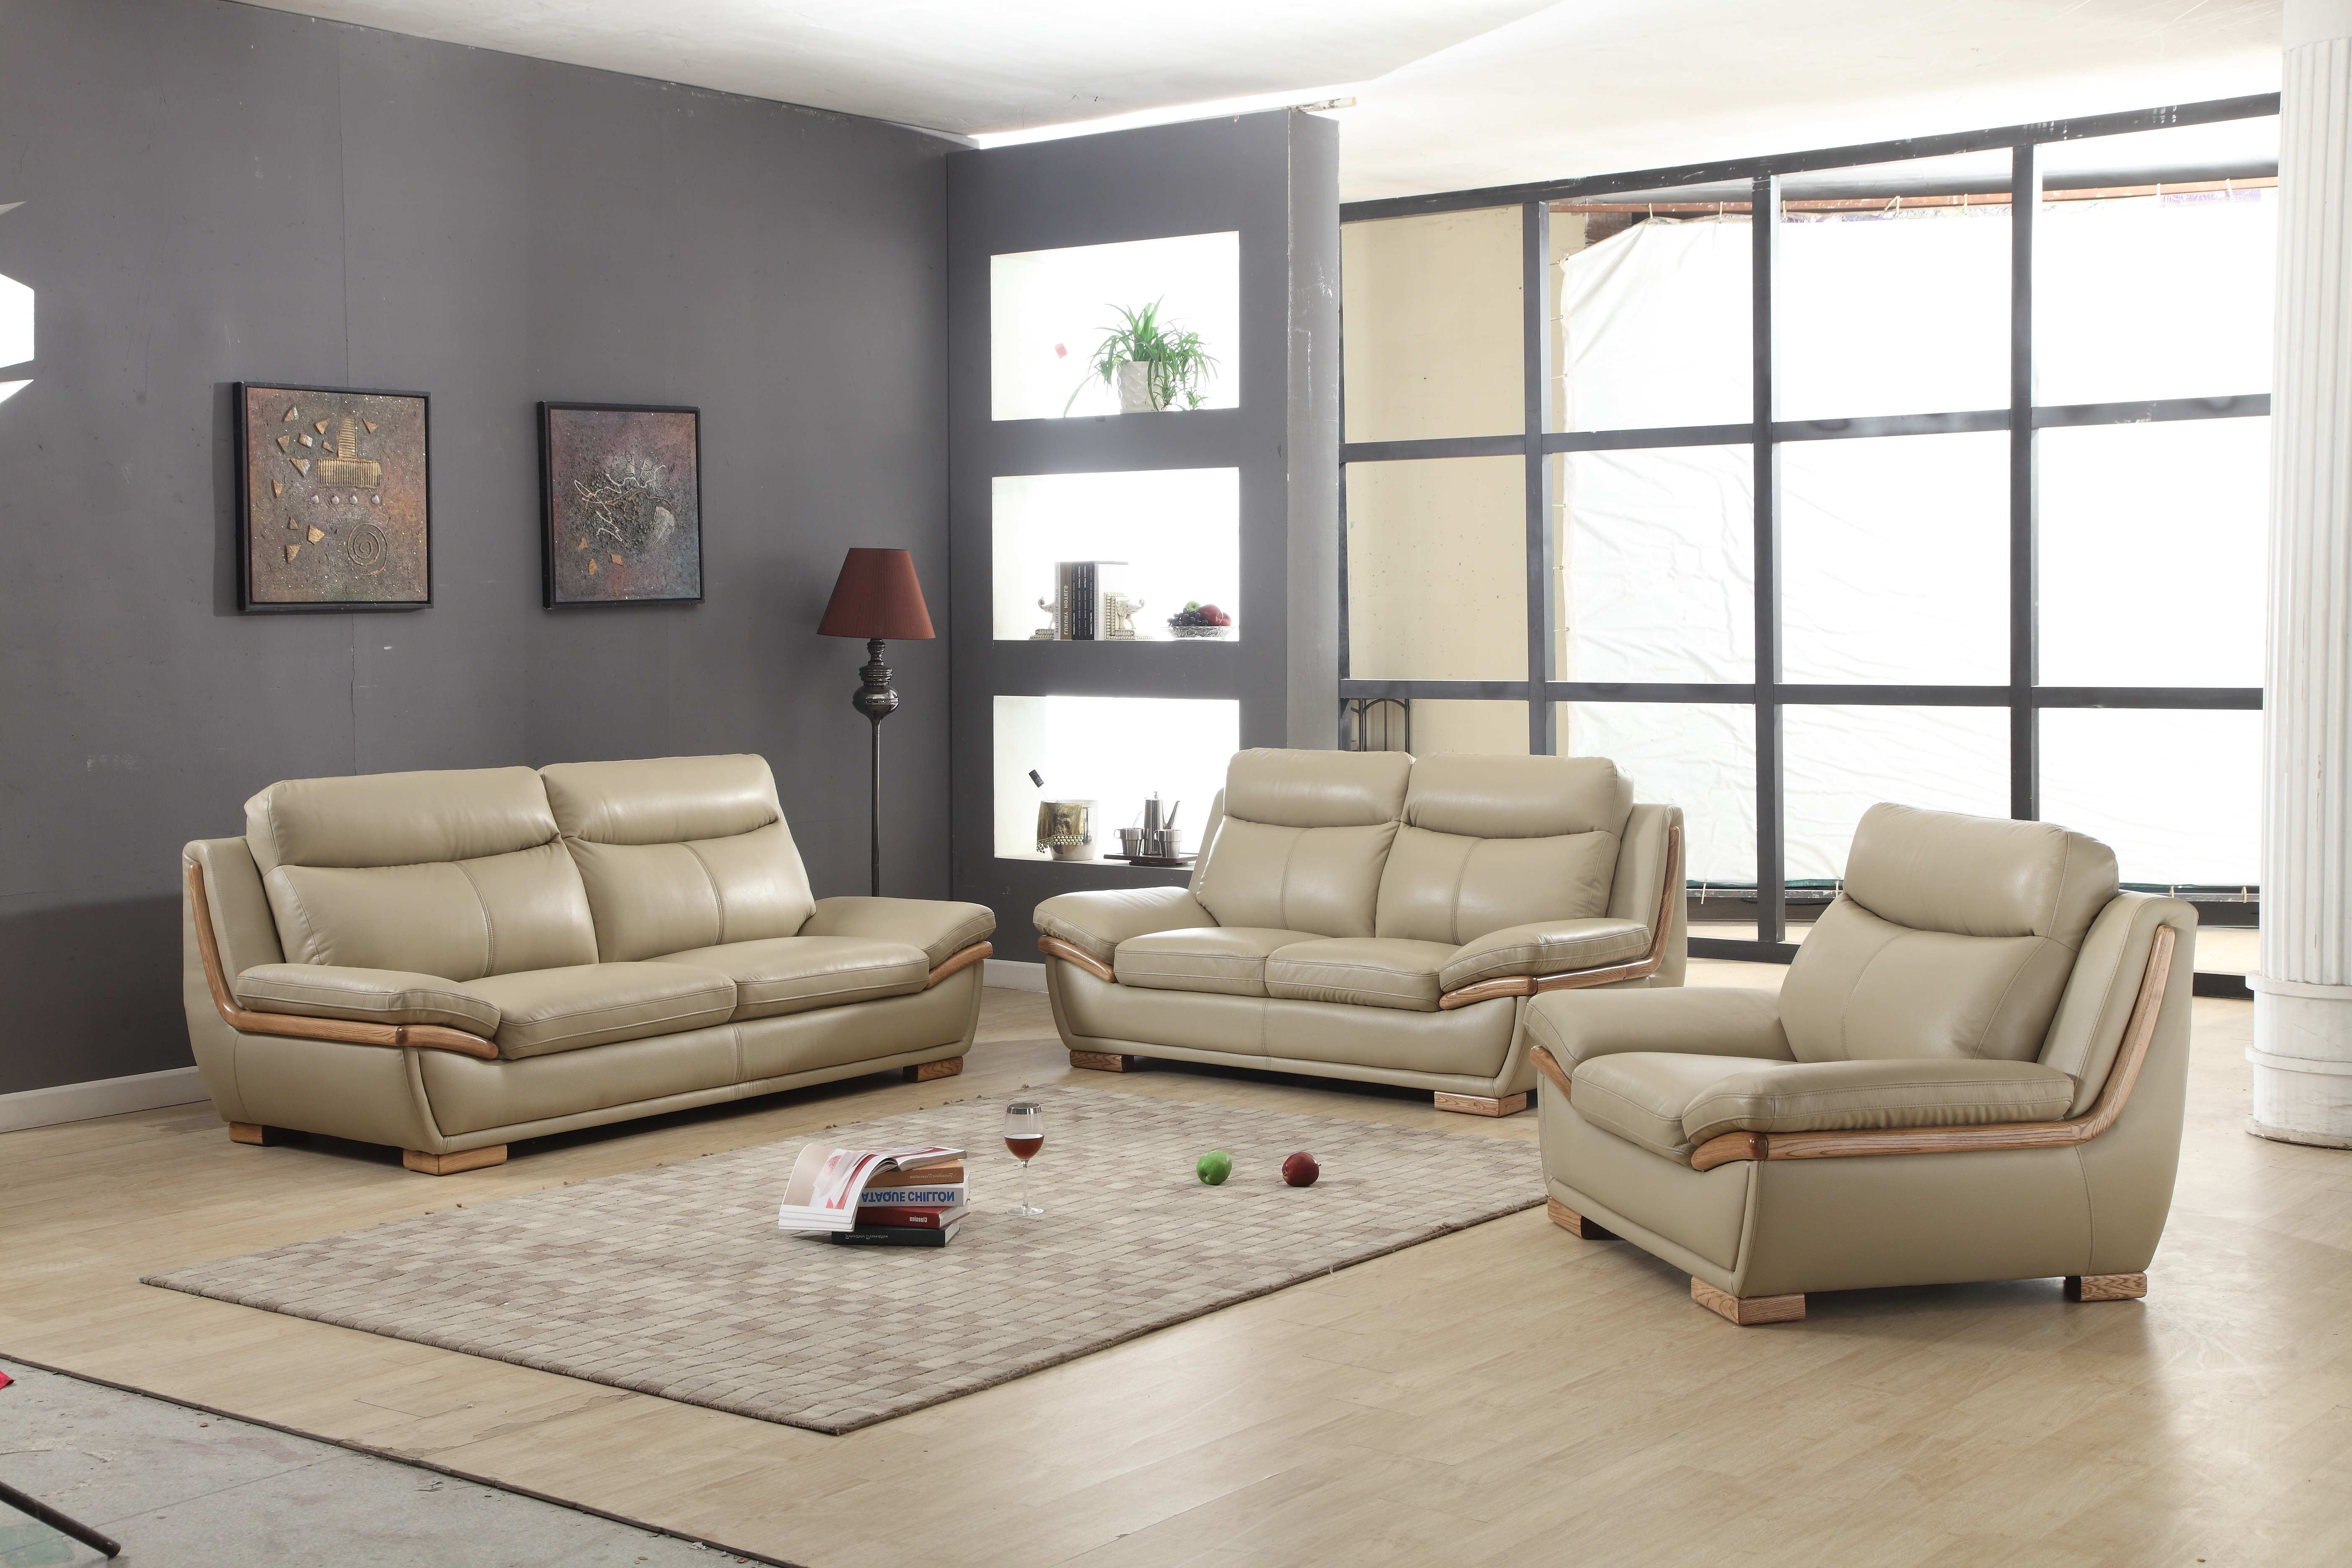 The Brick Leather Sofas In Most Current Modern Leather Sofa Black Bed Sleeper (View 16 of 20)